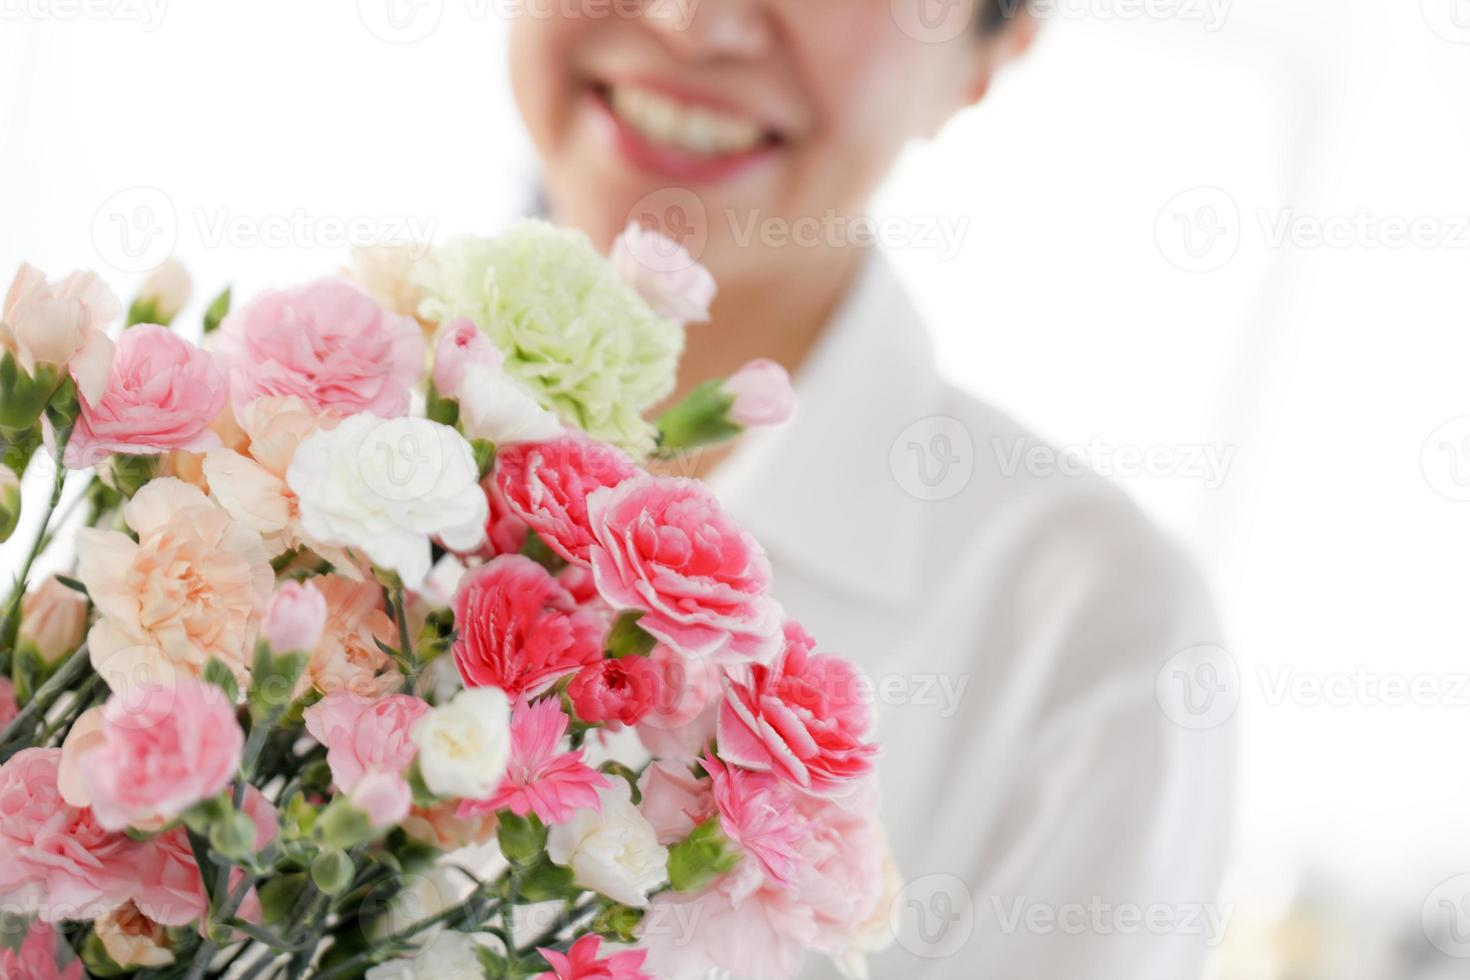 Flowers for Mother's Day gifts photo